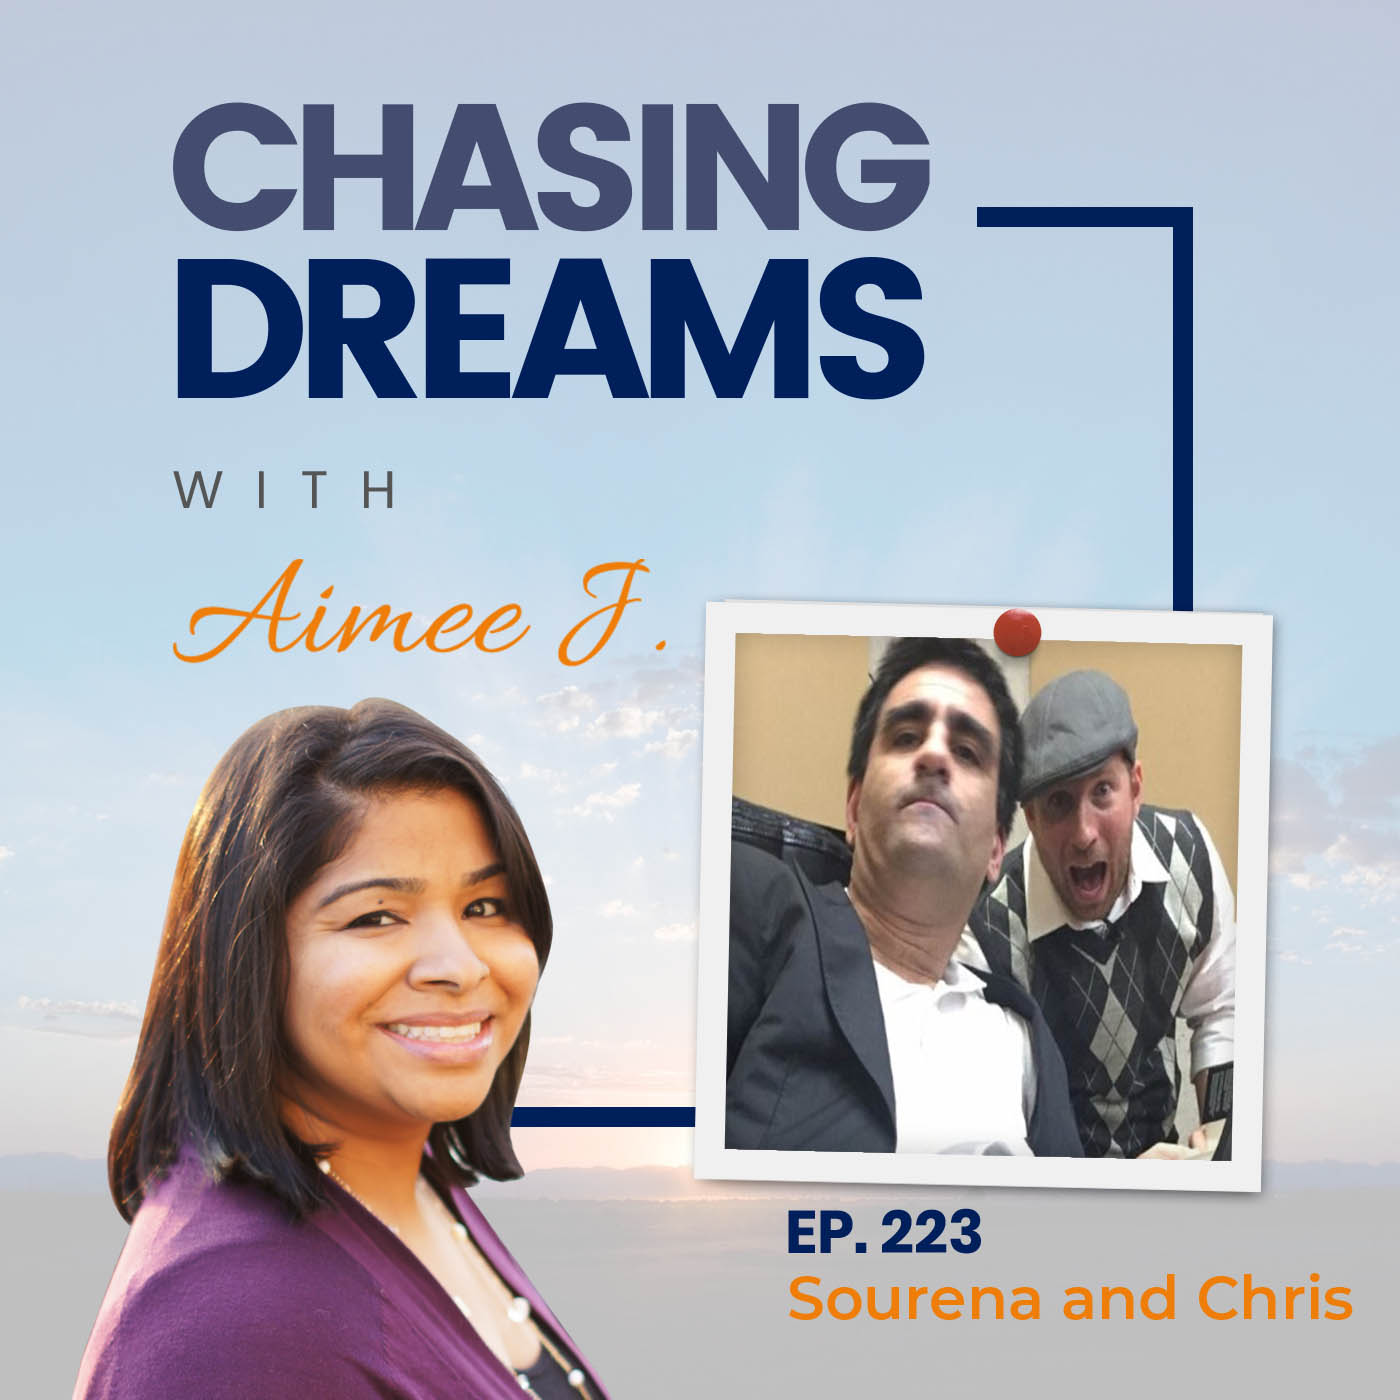 Ep. 223: Sourena and Chris - The Speaker Who Can't Speak and The Writer Who Can't Write